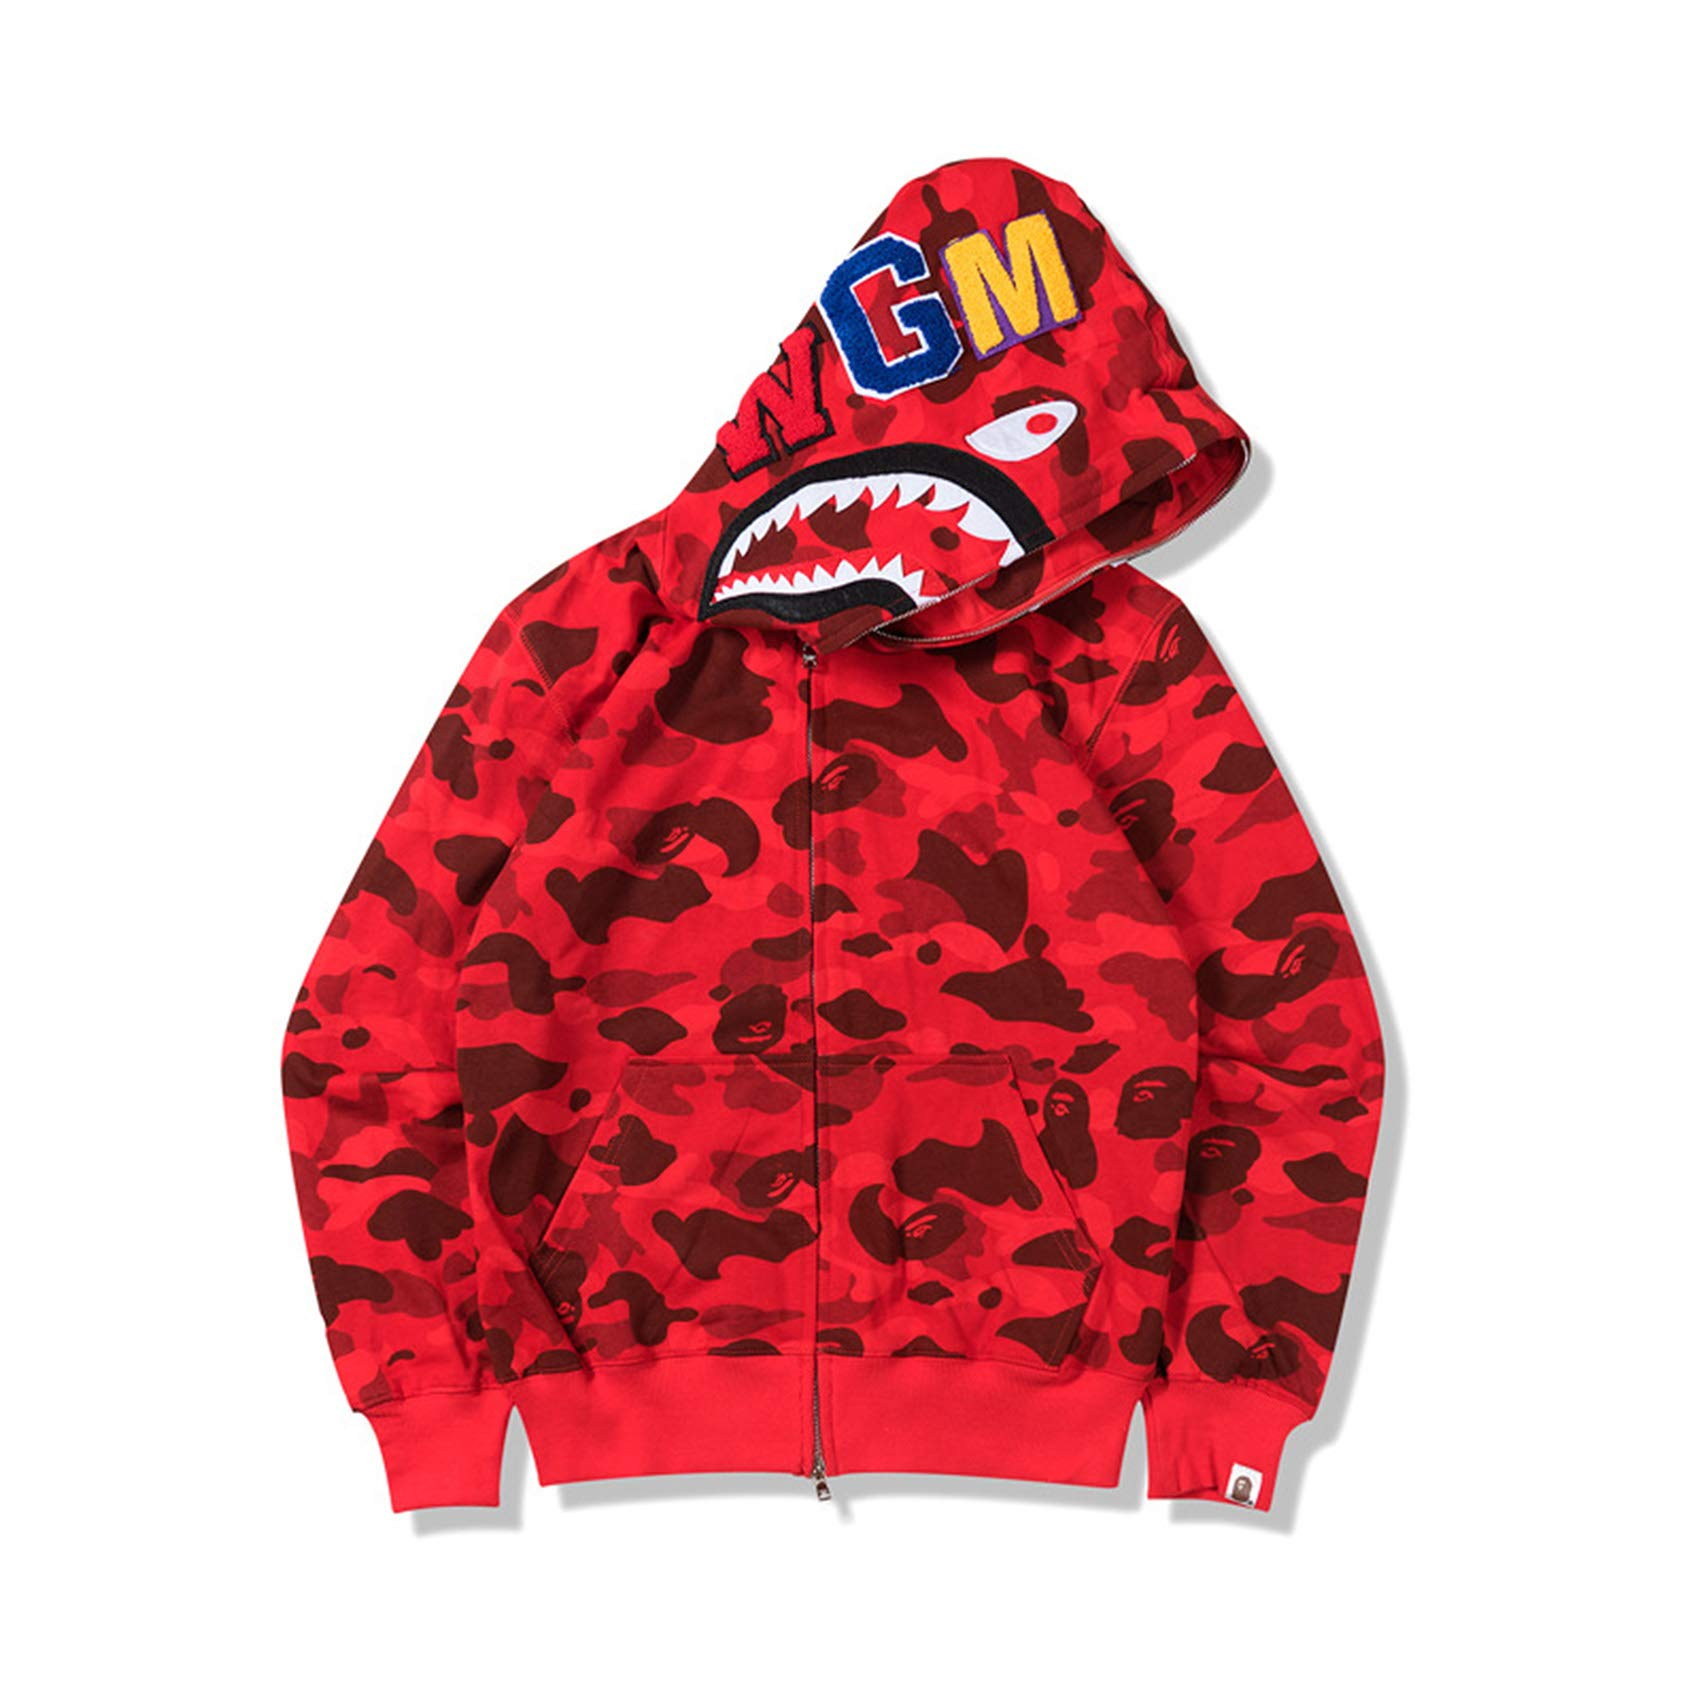 Shark Ape Bape Camo Mens Women Hoodies Sweatershirt Casual Zip Up Hip-Hop Funny Tops